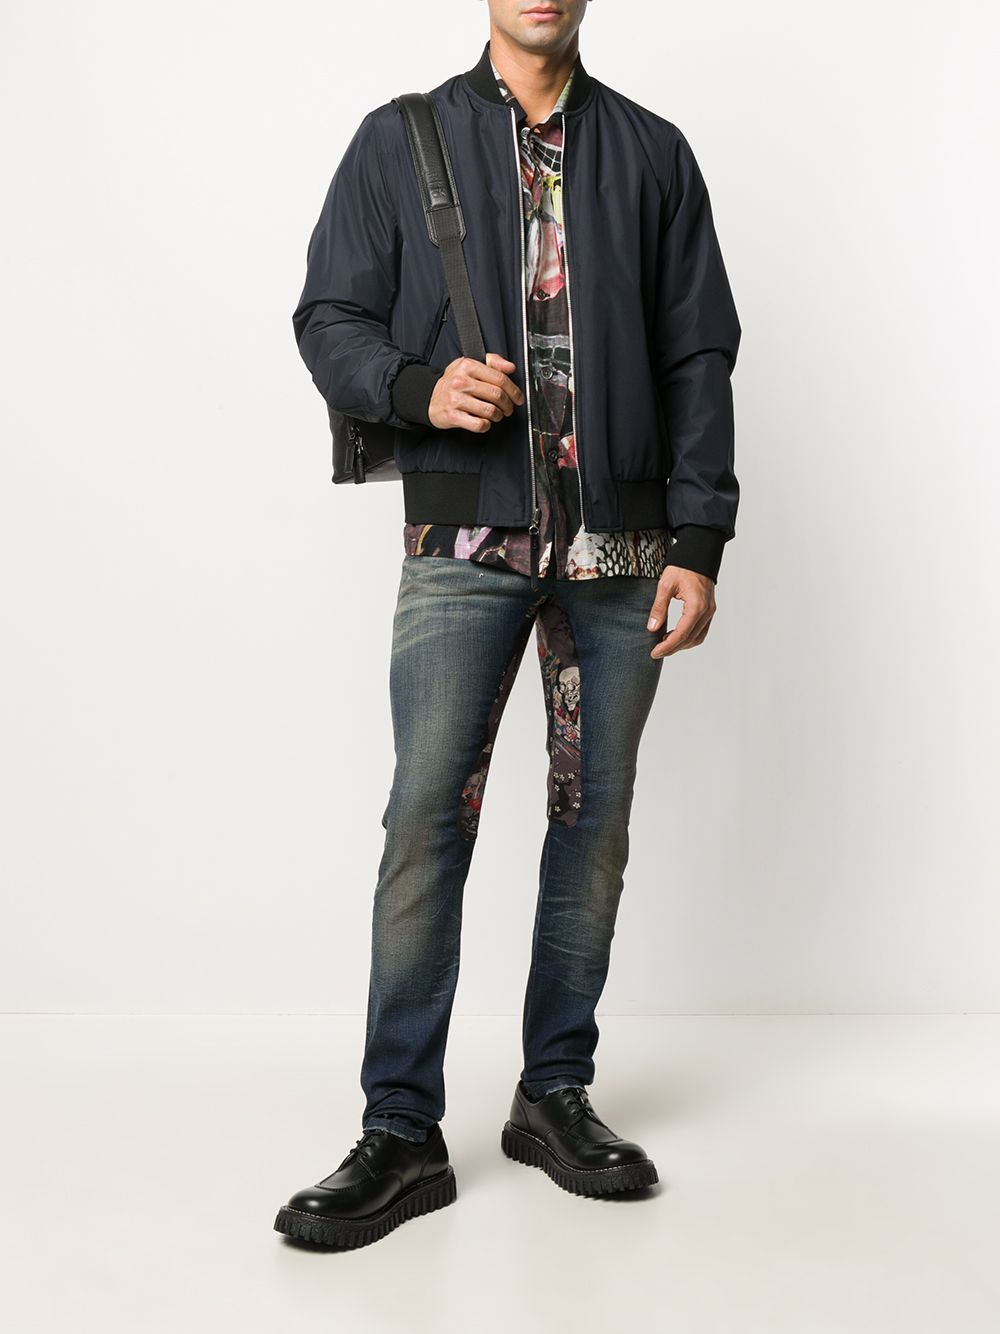 ALCHEMIST Skeleton Avery Jeans - Maison De Fashion